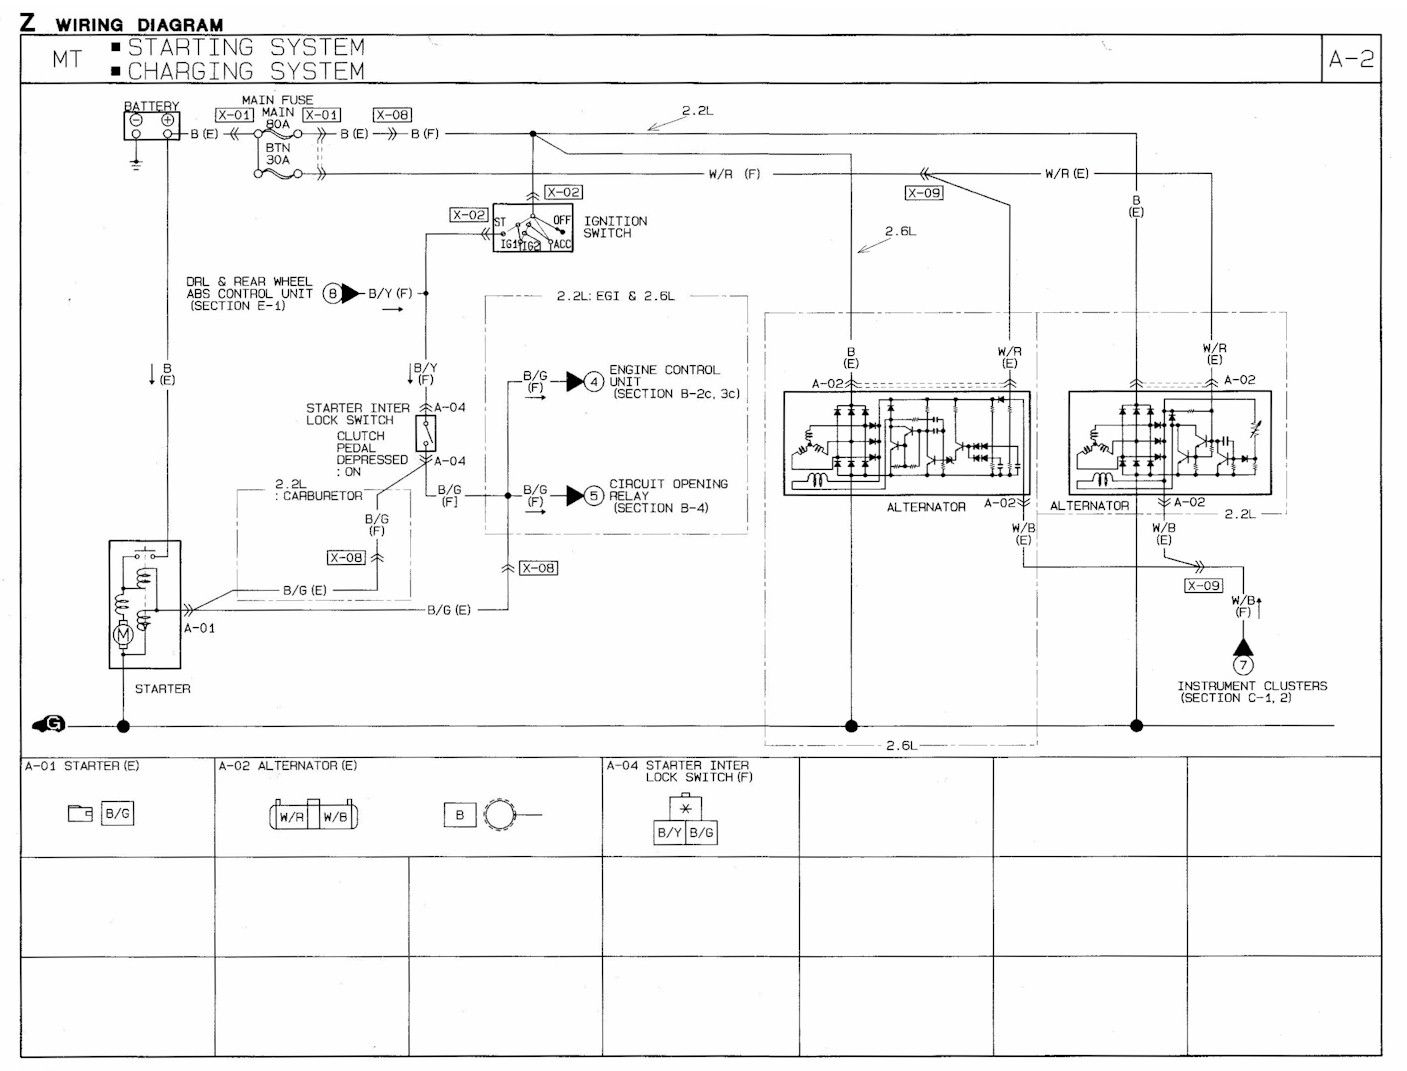 1991 Mazda B2600i Starter Alternator Wiring Diagram (Manual Transmission)  Manual Transmission, Mazda,